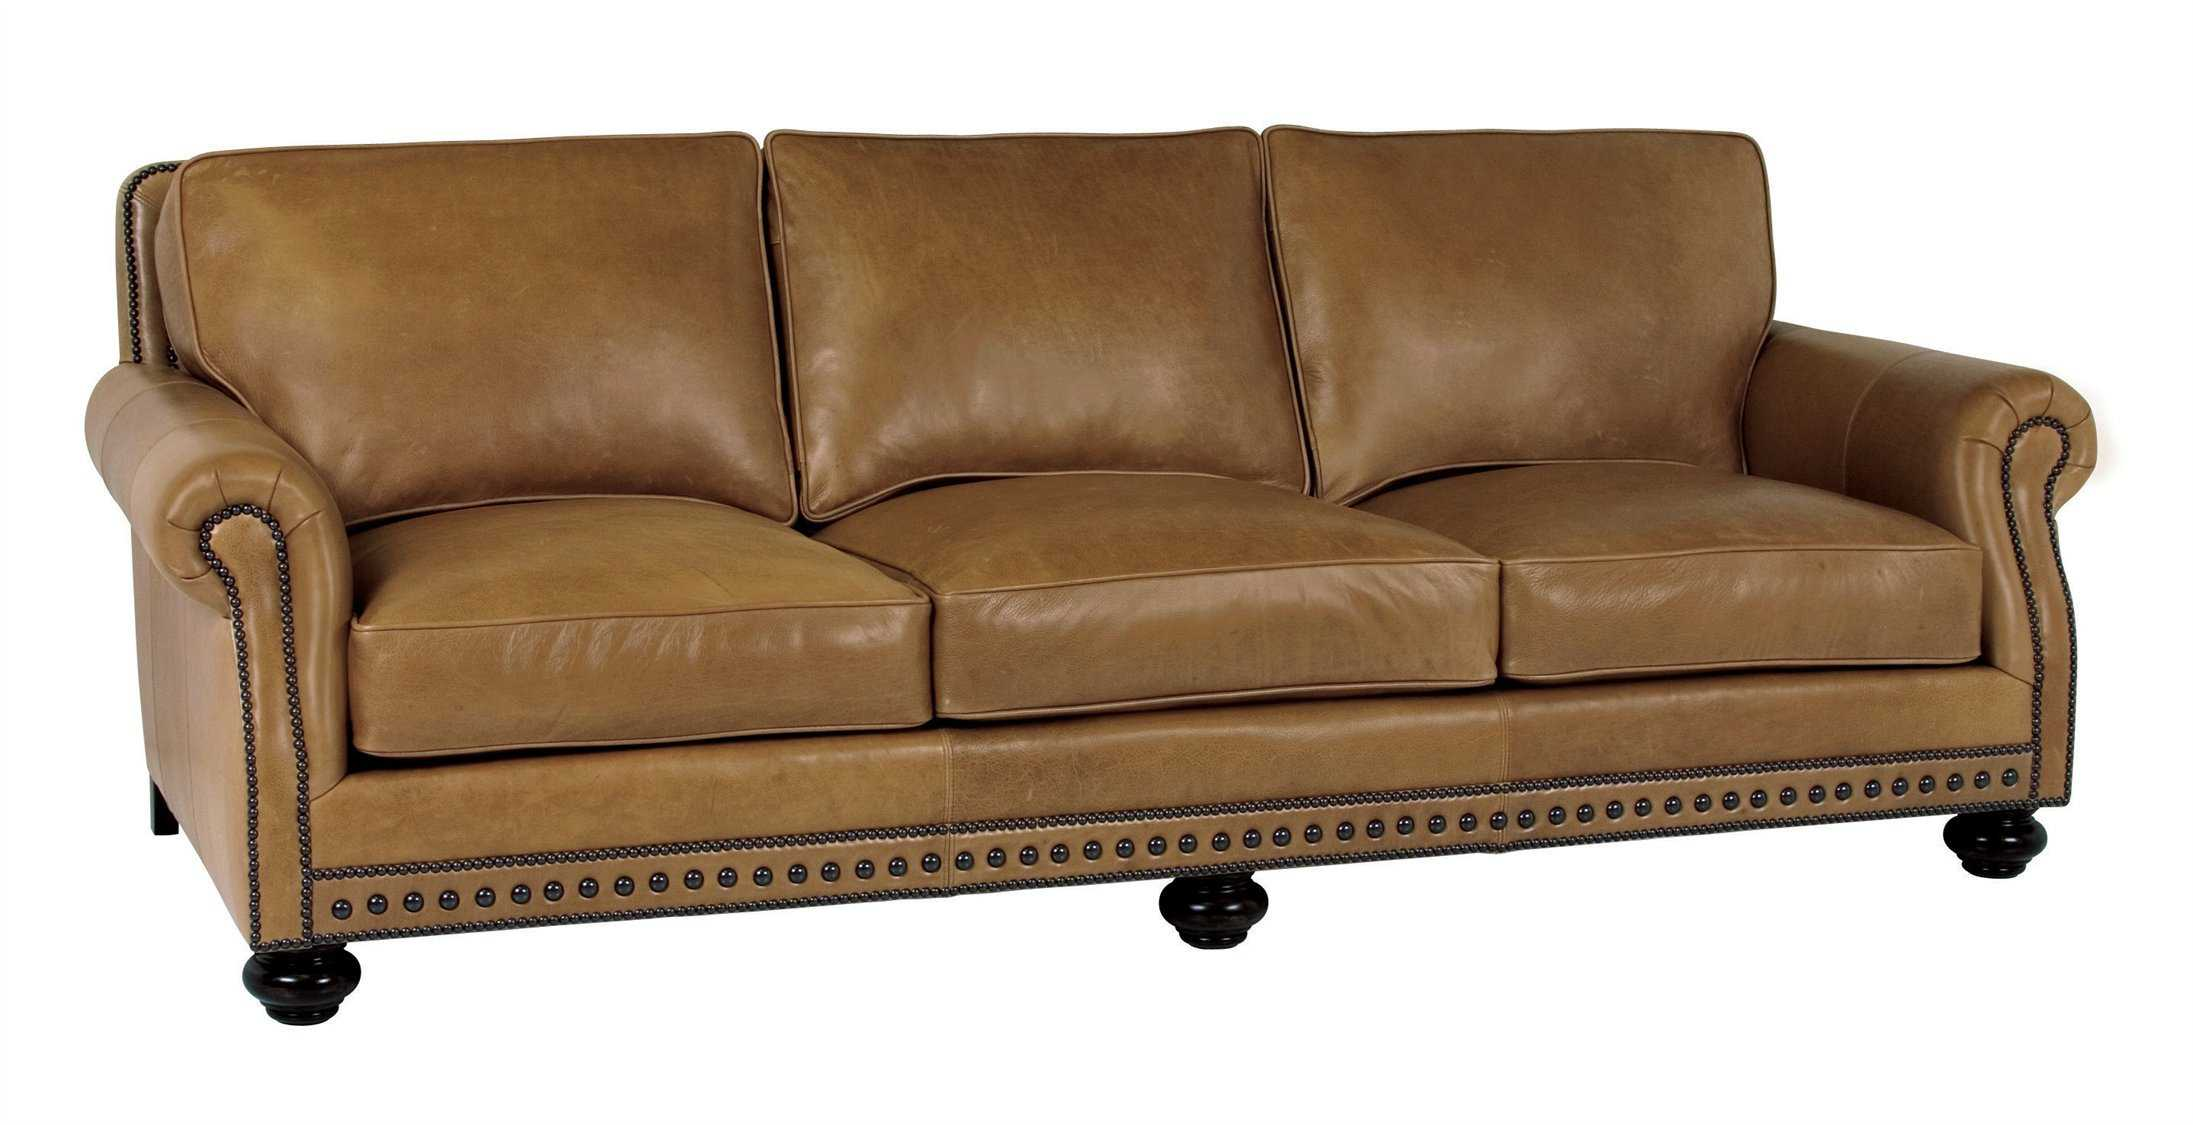 Classic leather riverside sofa cl3253 for Traditional leather sofa bed